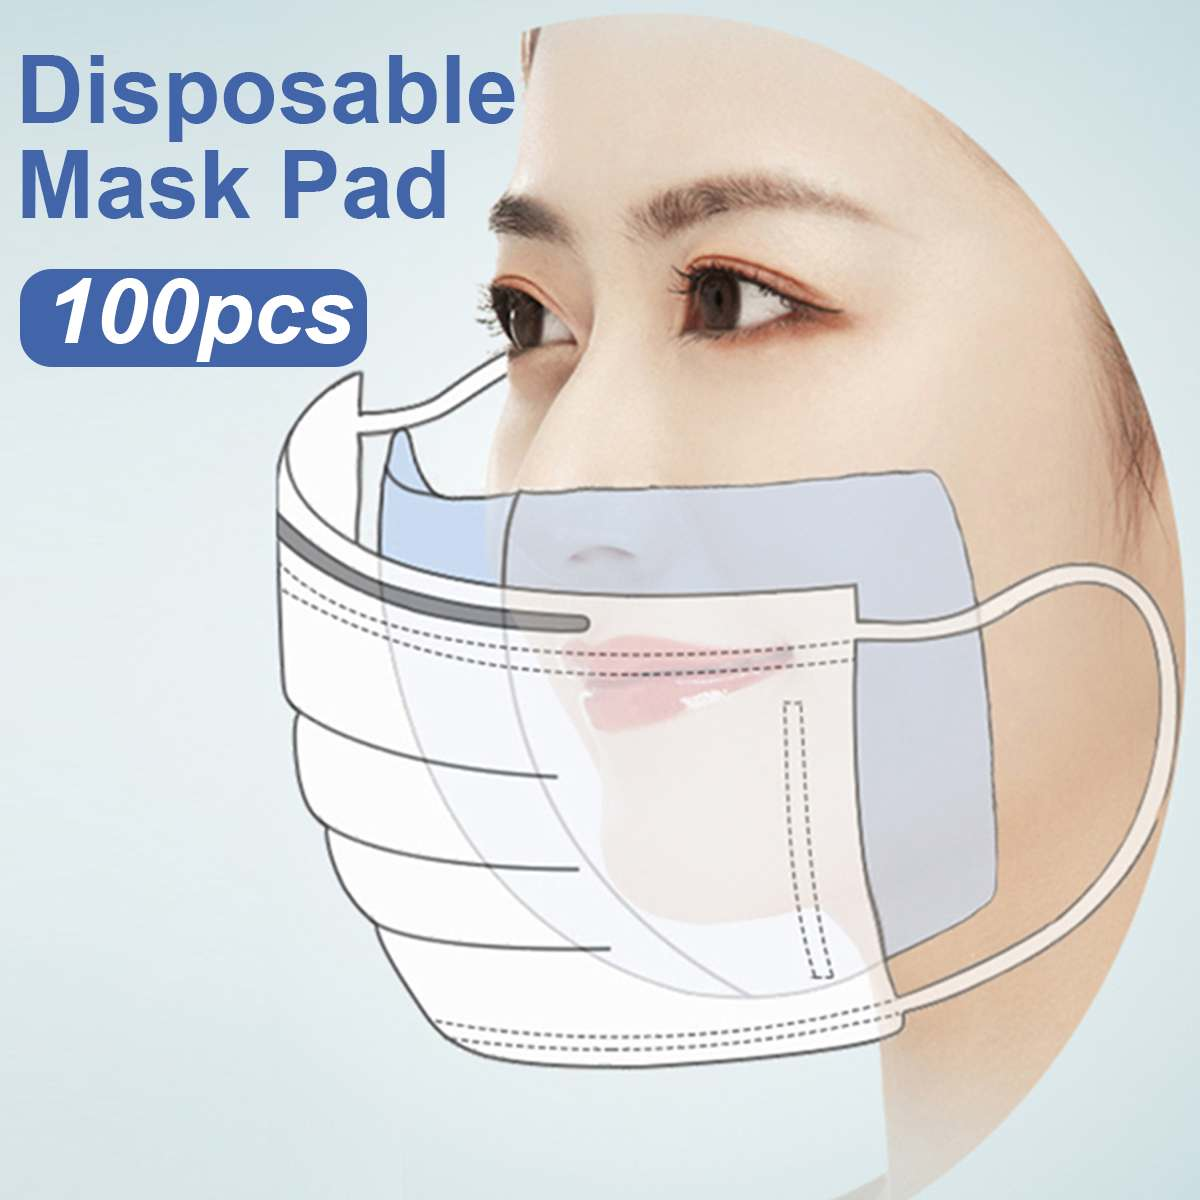 100/200pcs Disposable Filter Pad for Kids Adult Face Mask Respirator Dustproof Anti PM2.5 fit for N95 KN95 KF94 ffp3 2 1 Masks 1